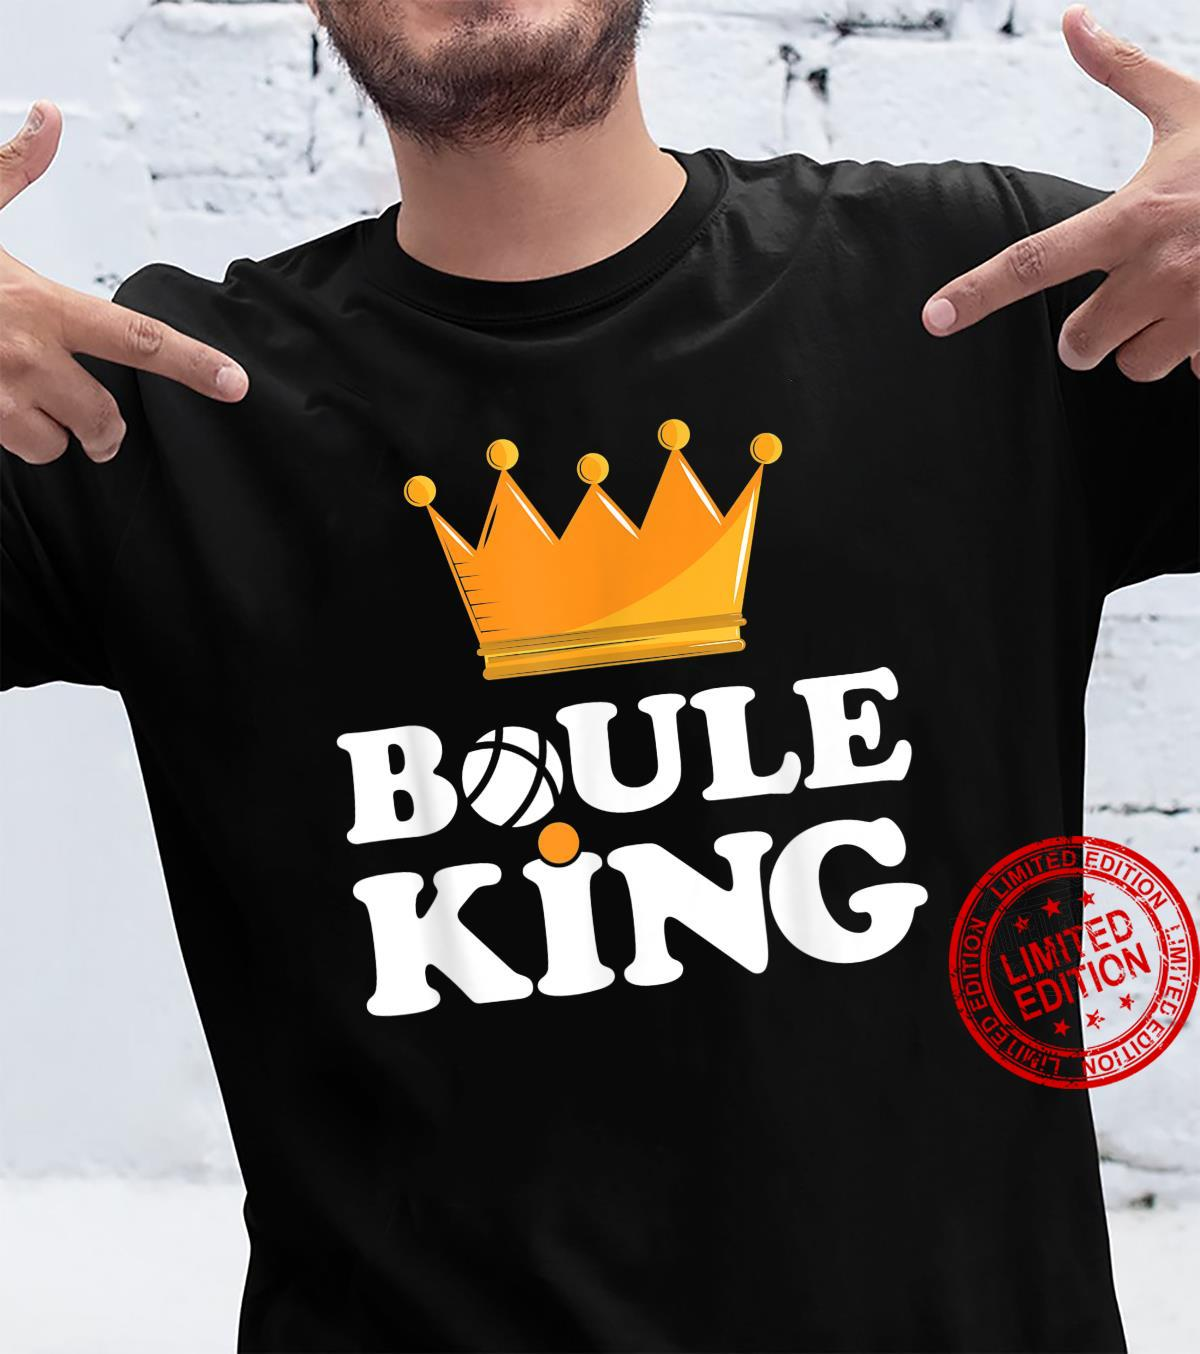 Mens Boule King With Crown Outfit For Petanque And Boules Players Shirt